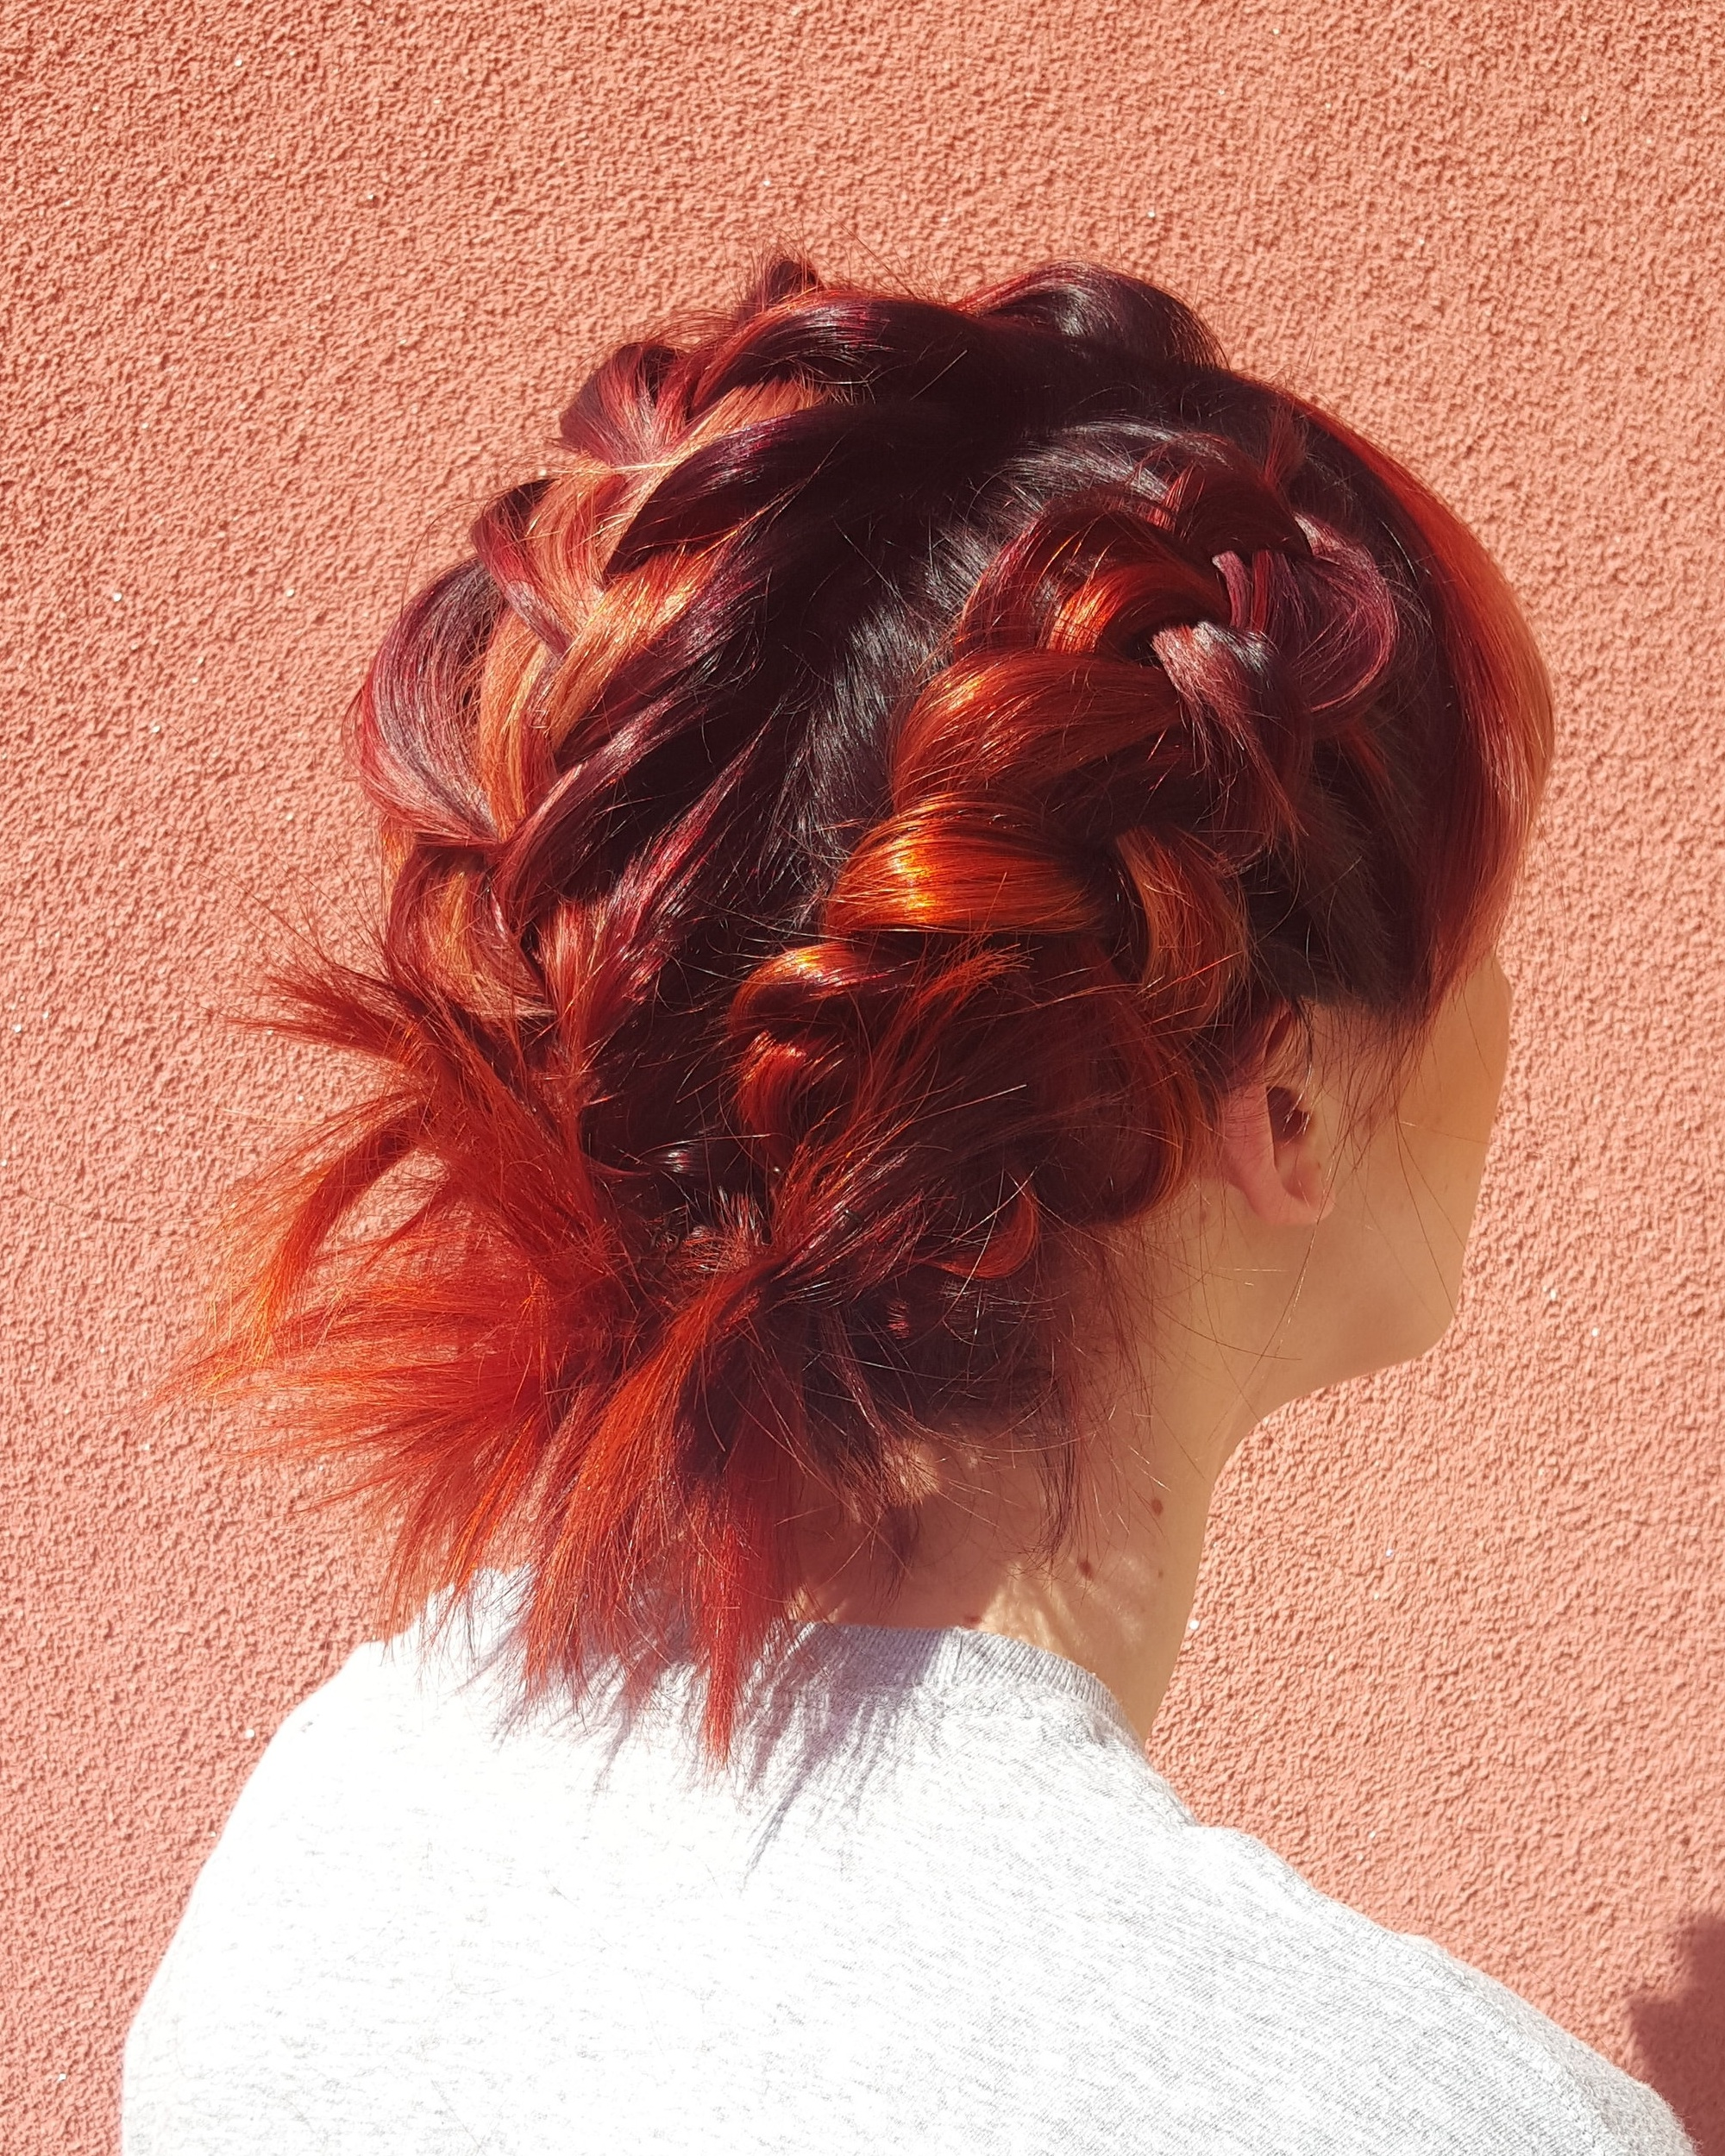 This look was created using A New Colour from Davines and Davines More Inside styling products.